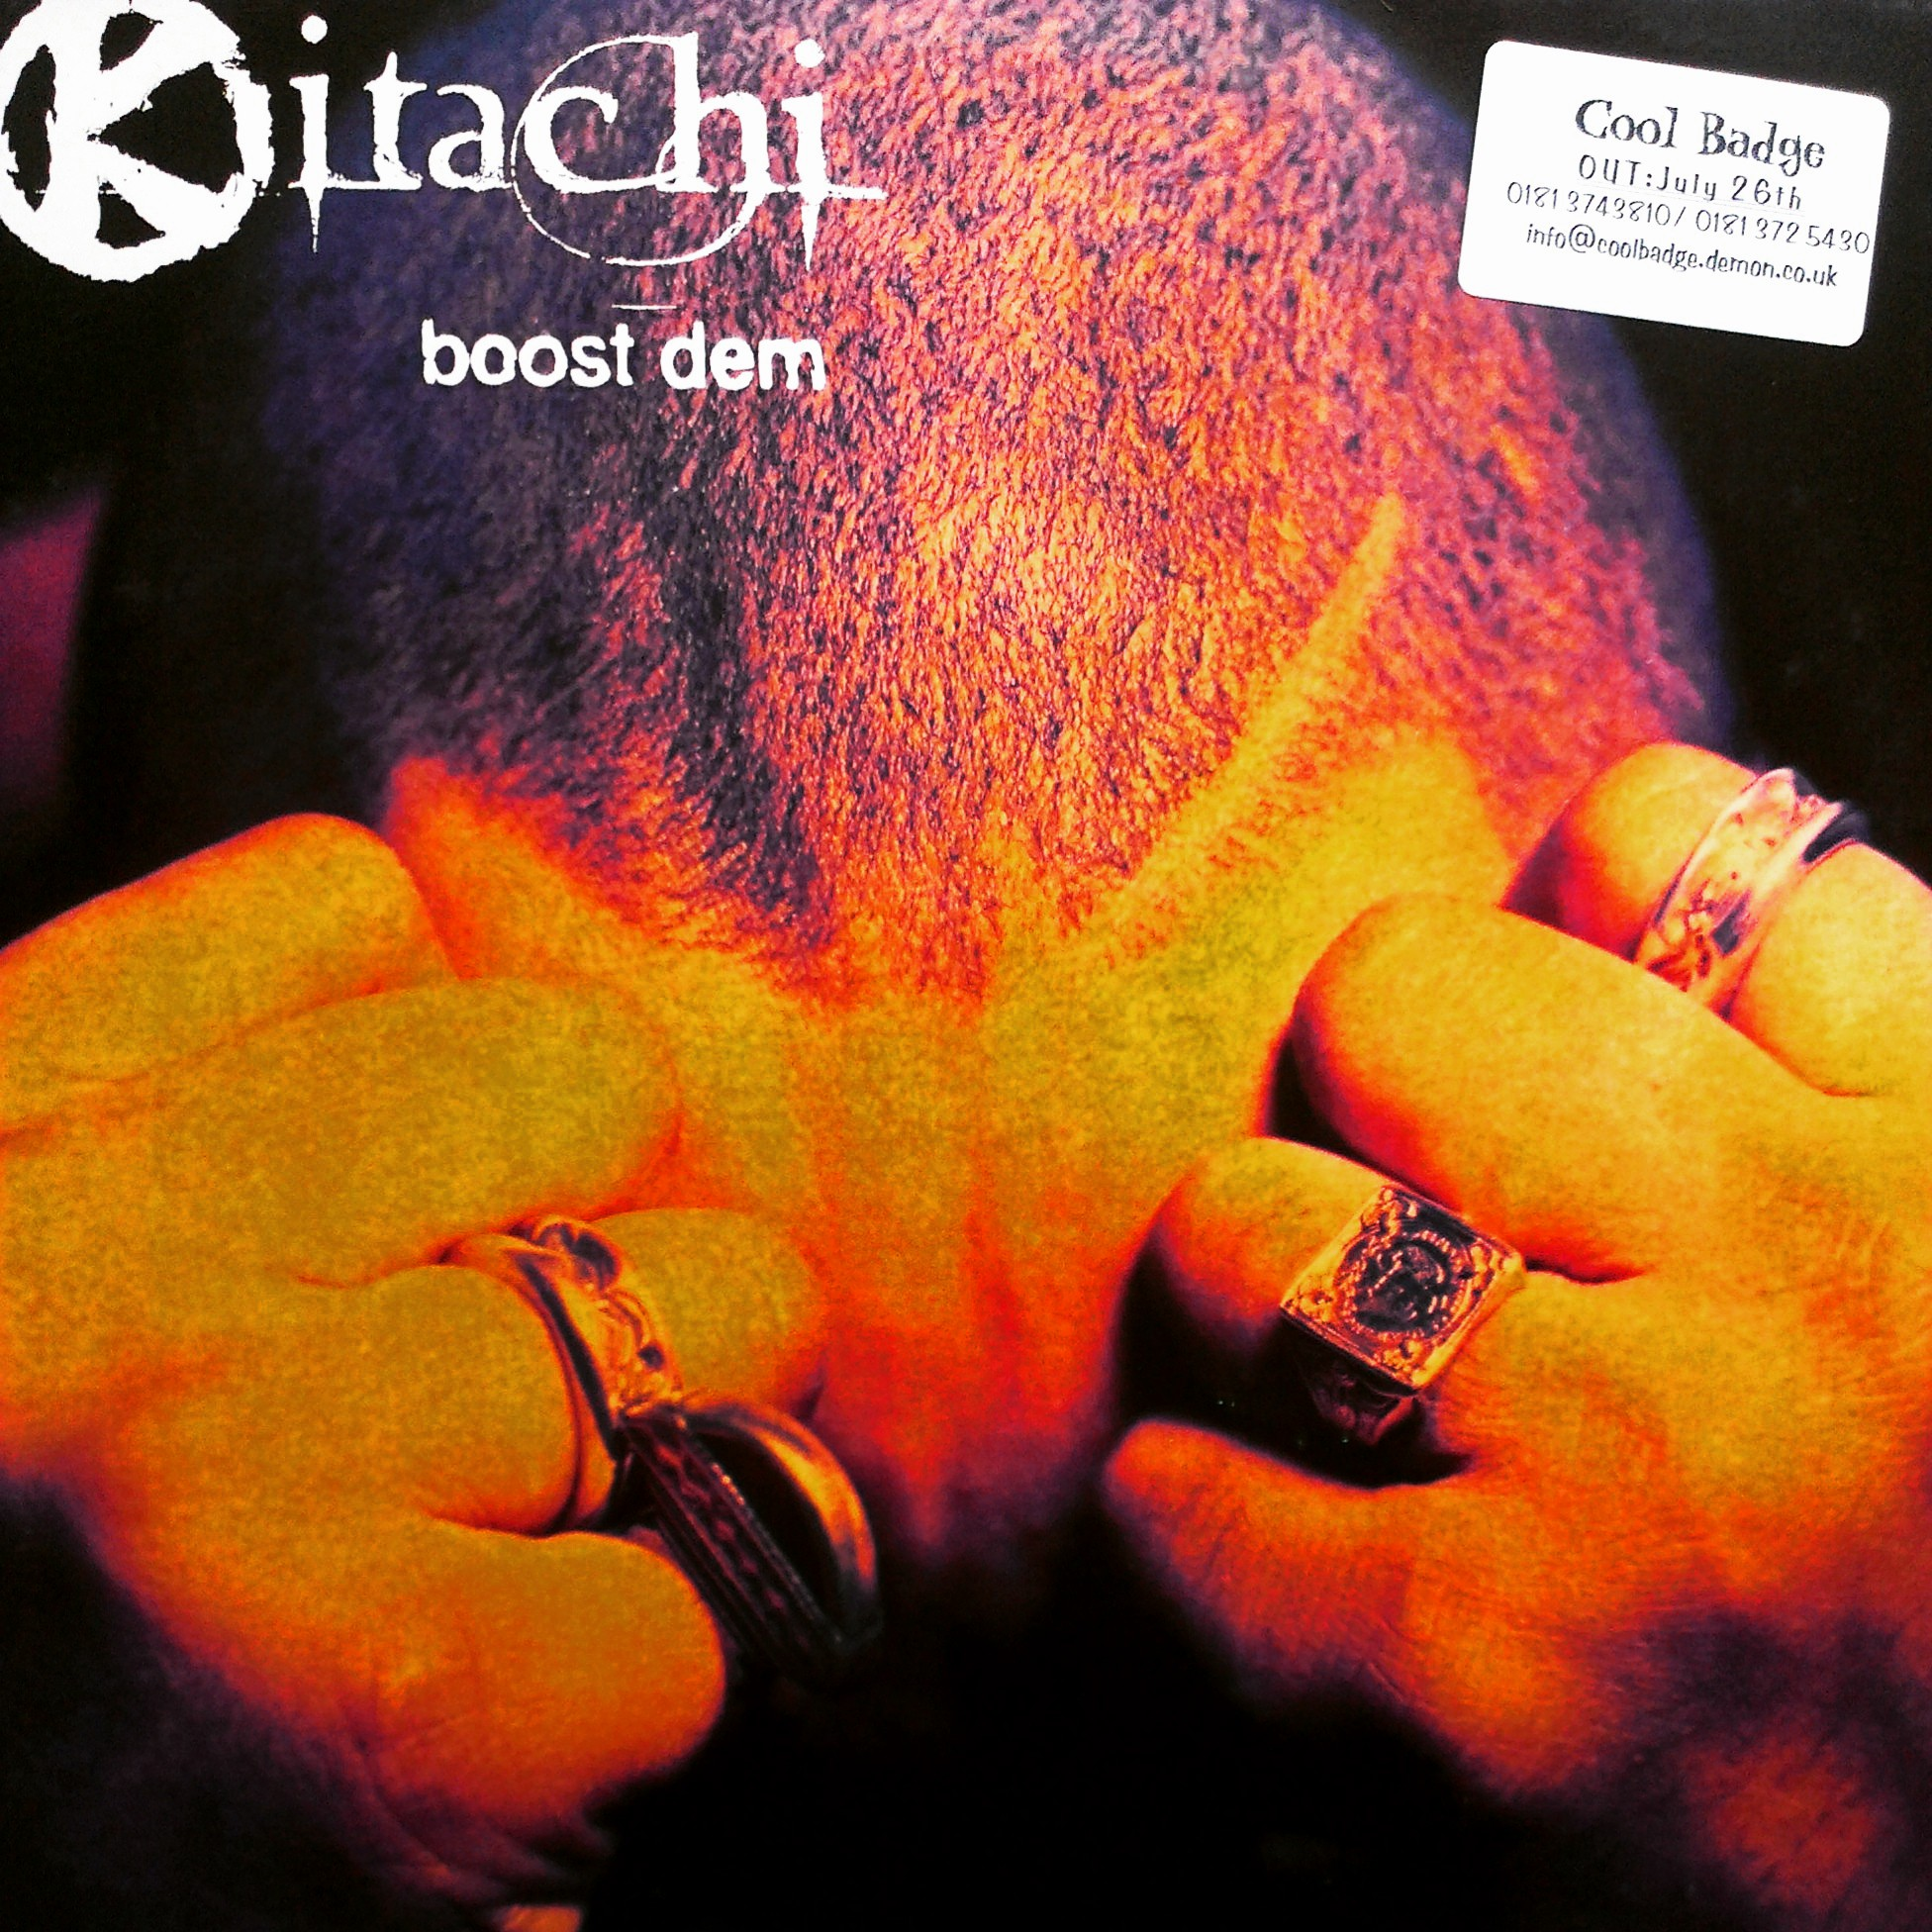 "12"" Kitachi - Boost Dem"